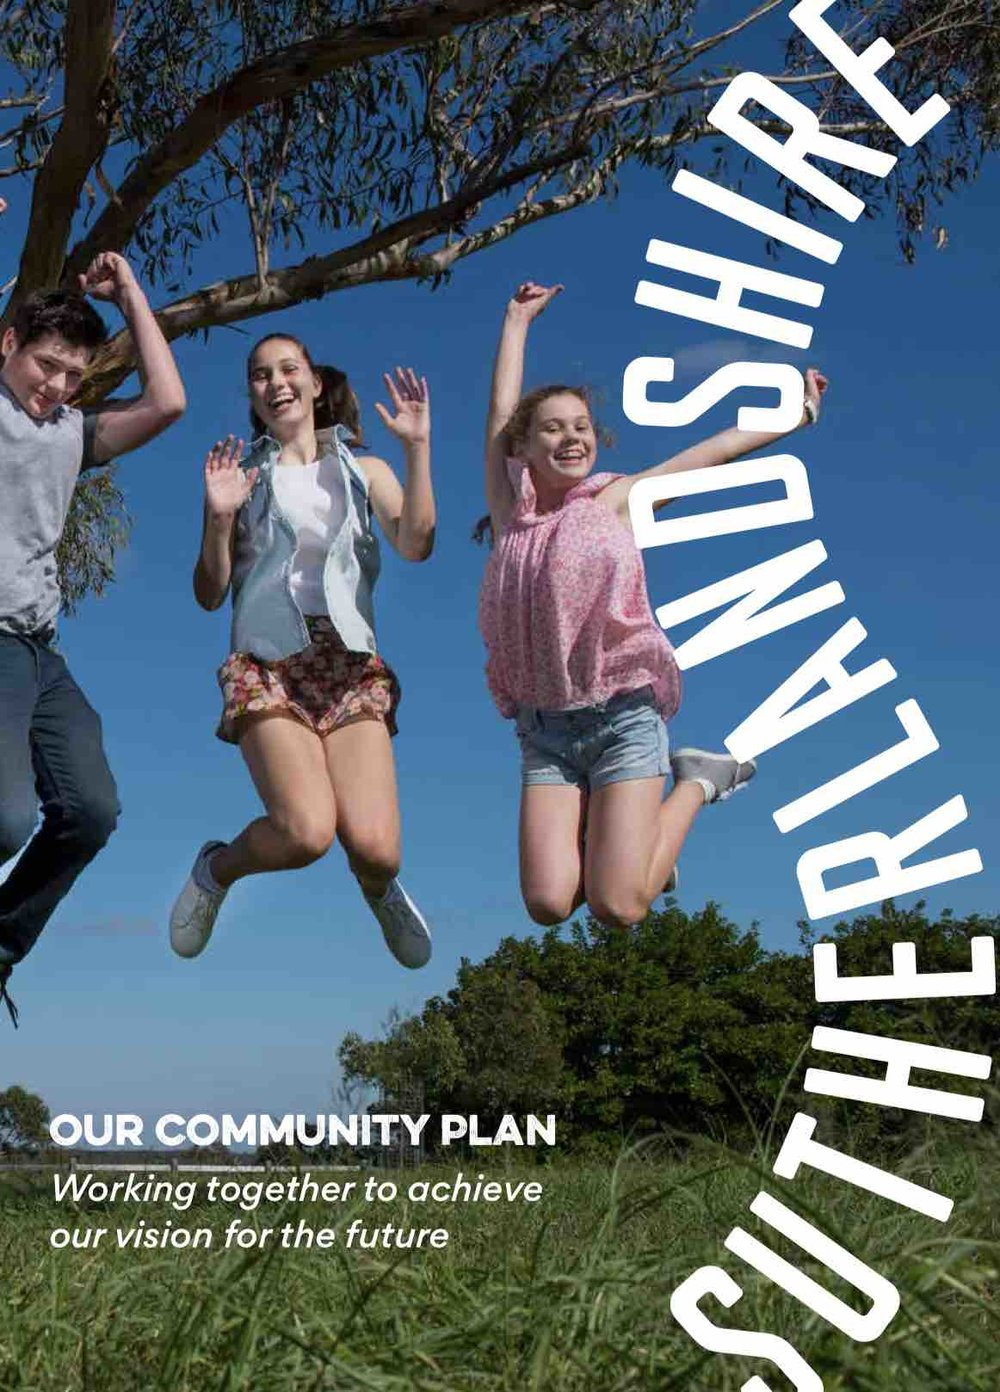 SUTHERLAND COMMUNITY STRATEGIC PLAN 2017    Sutherland Shire Council   We assisted Sutherland Shire Council in the development of their integrated  ...more